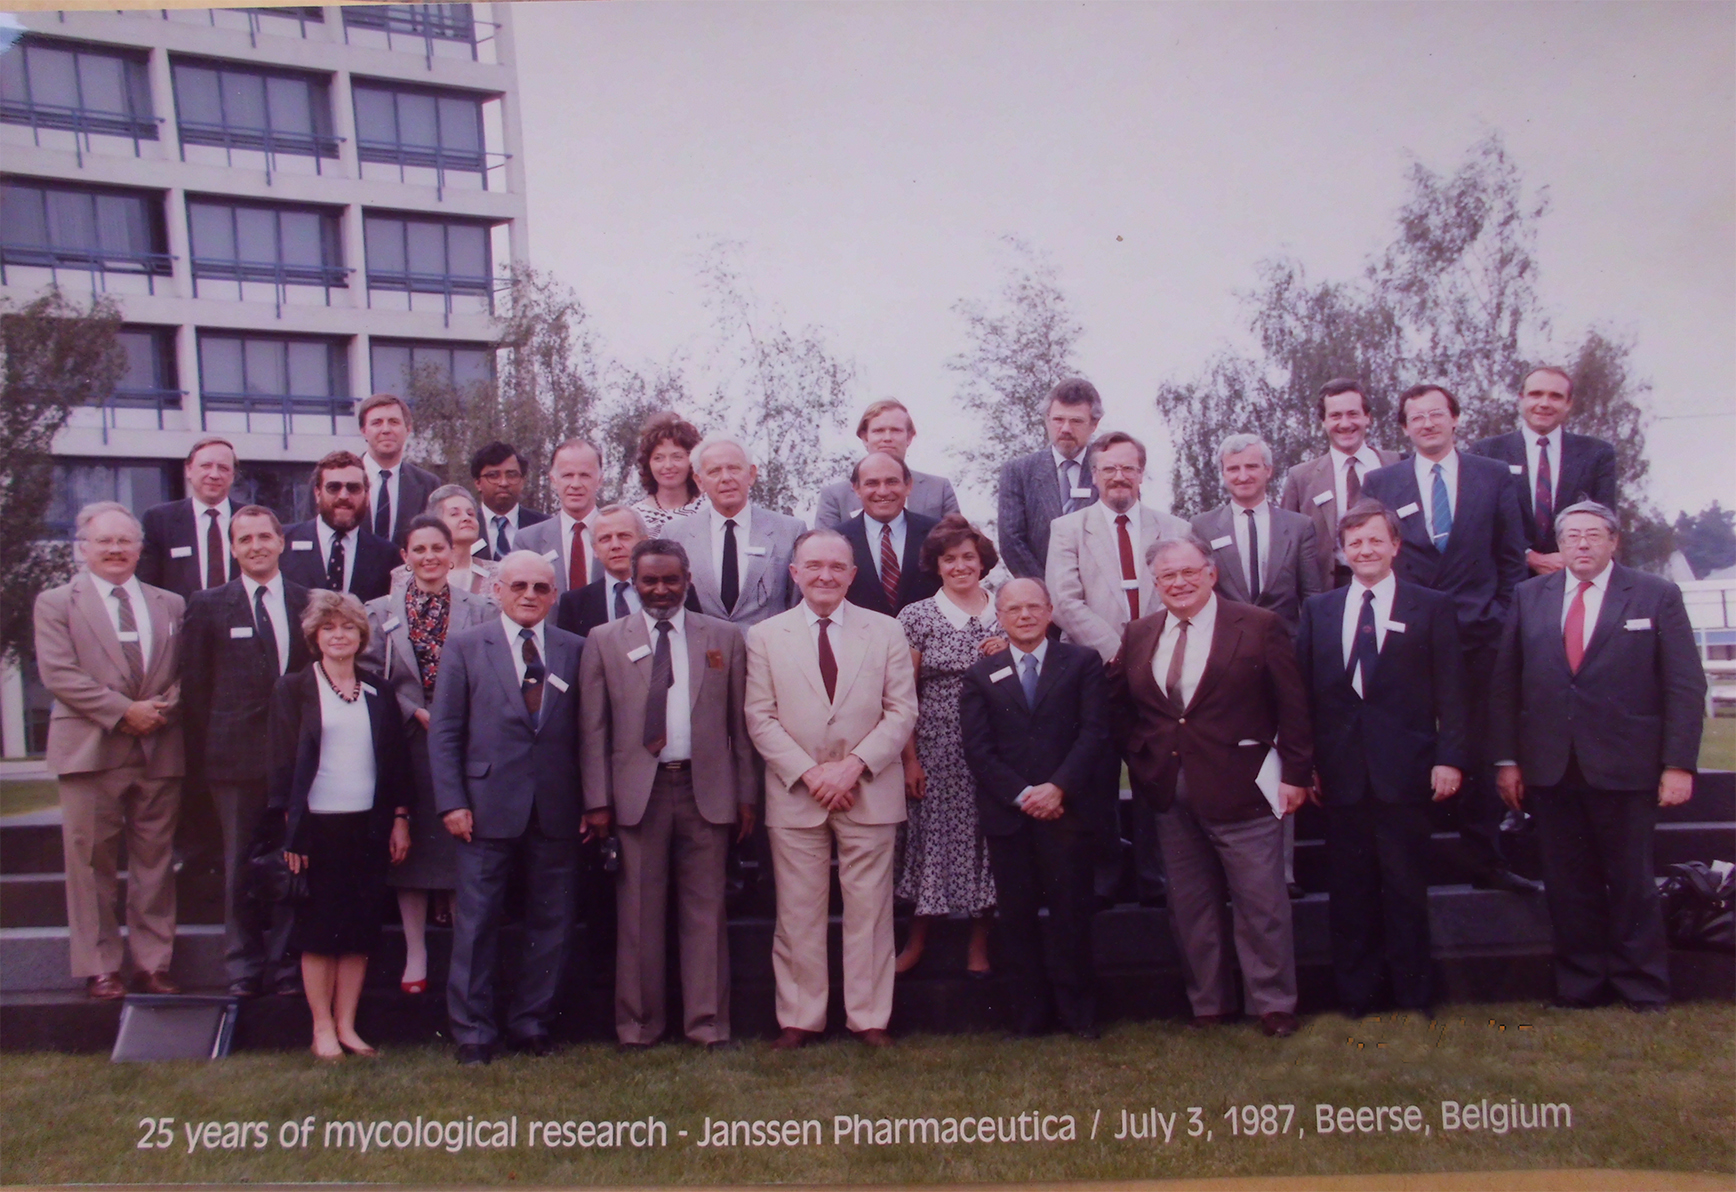 Prof-Elsheikh-with-other-mycologists-attending-Janssens-25-years-of-mycology-research-meeting-in-Belgium-1987